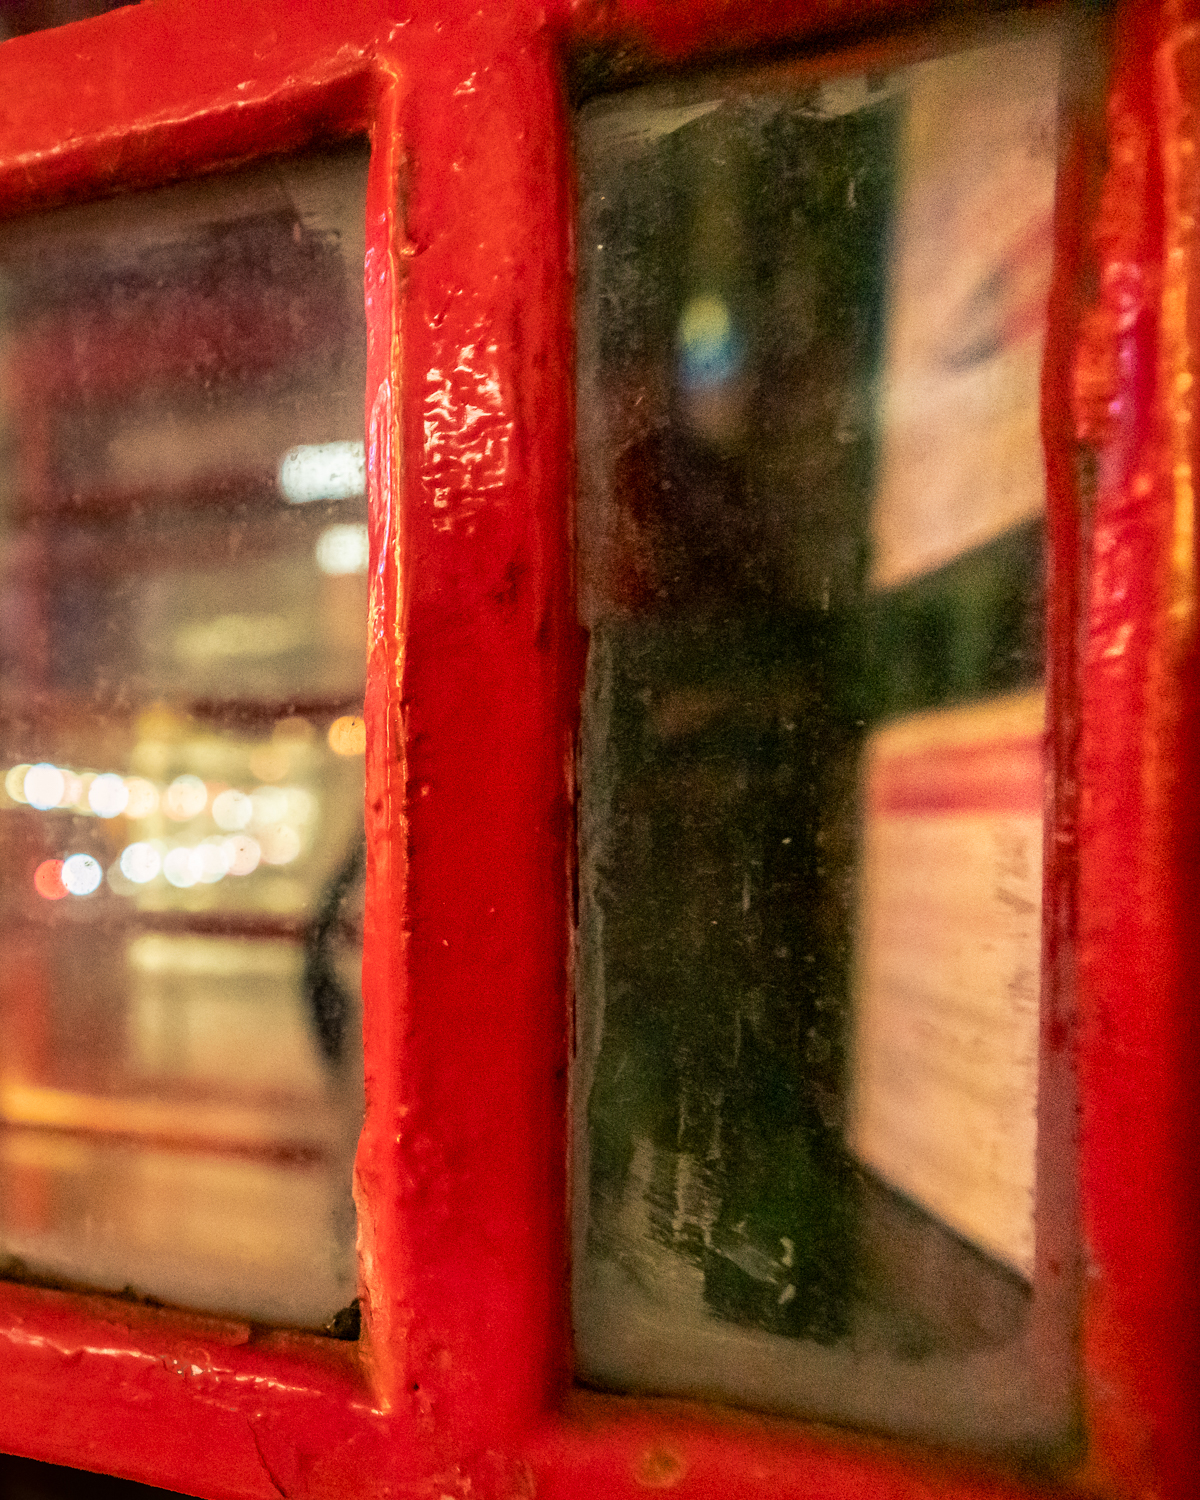 Peeping through the glass of a phone box at night